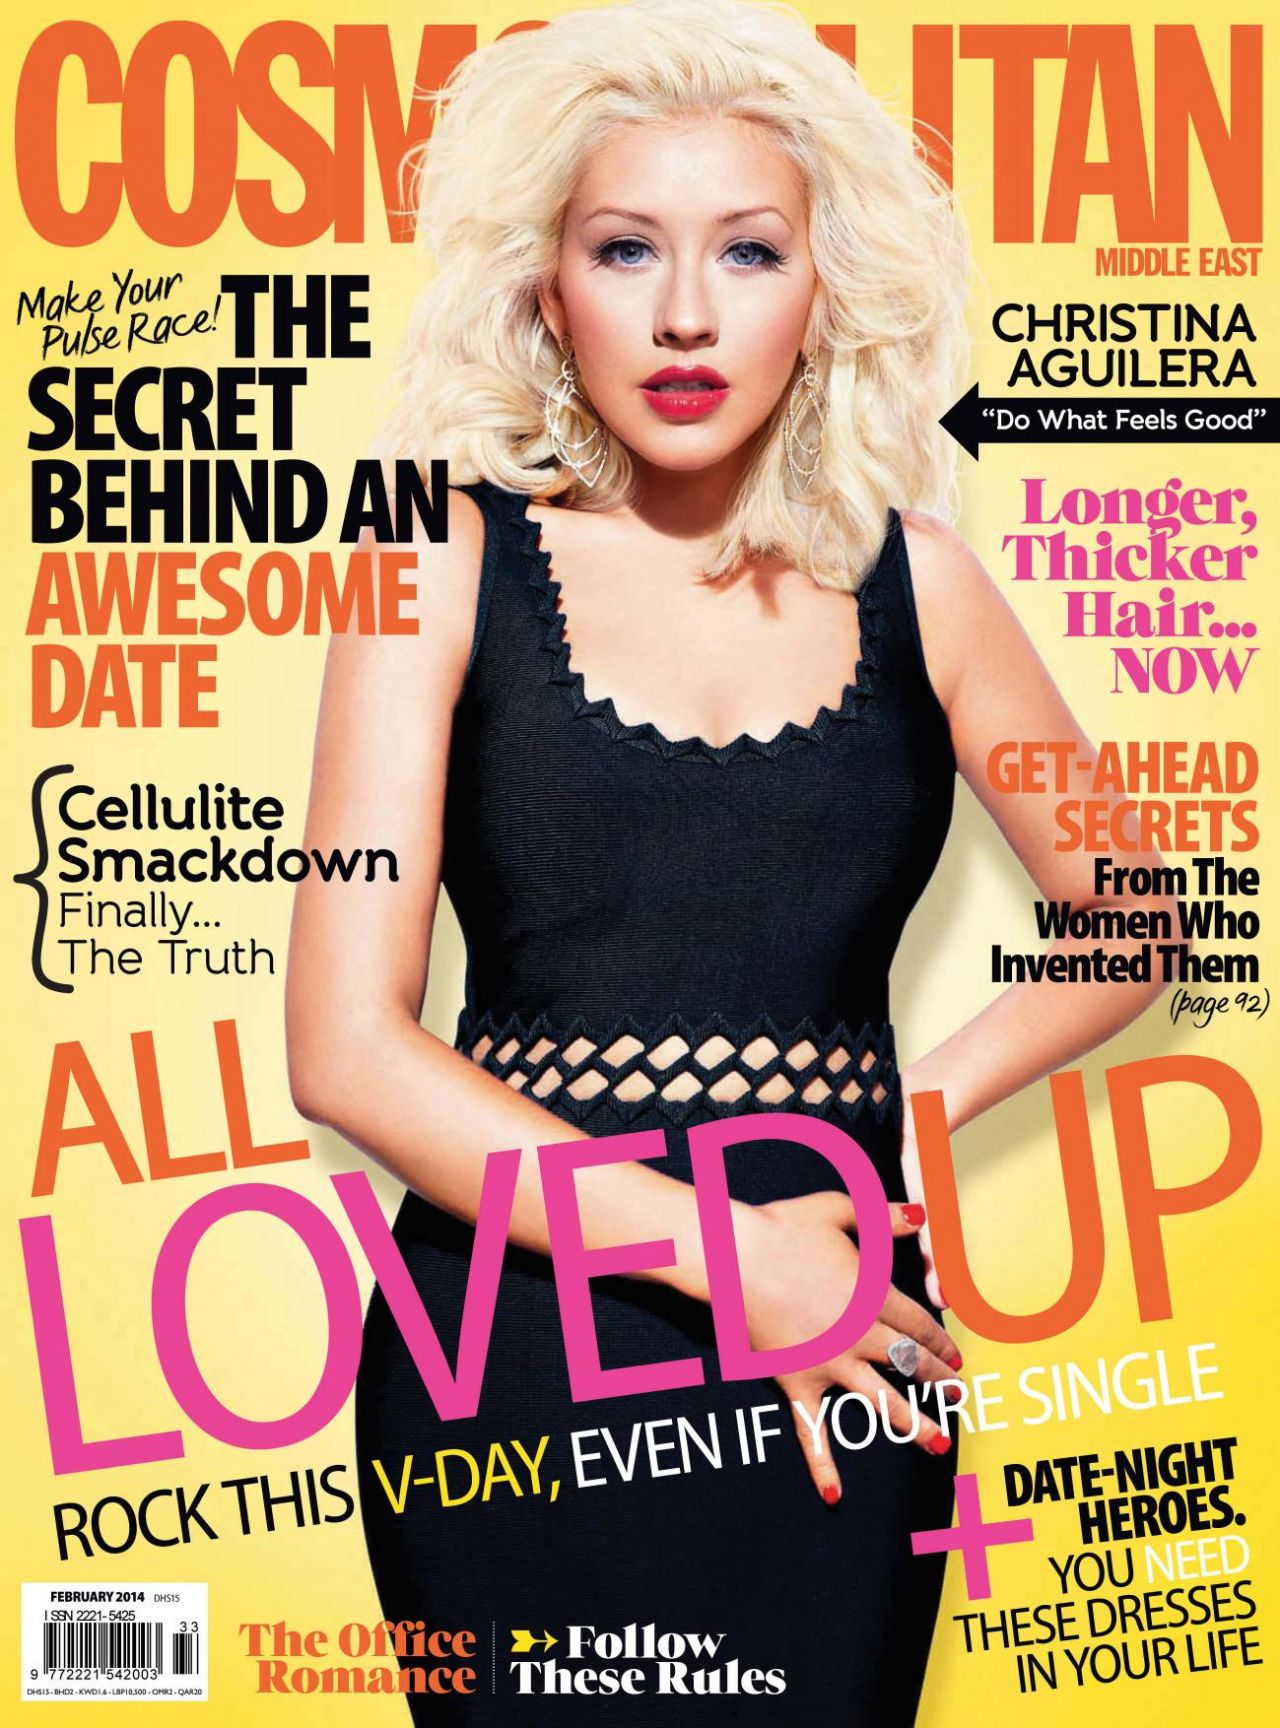 Christina Aguilera - COSMOPOLITAN Magazine (Middle East) -  February 2014 Issue